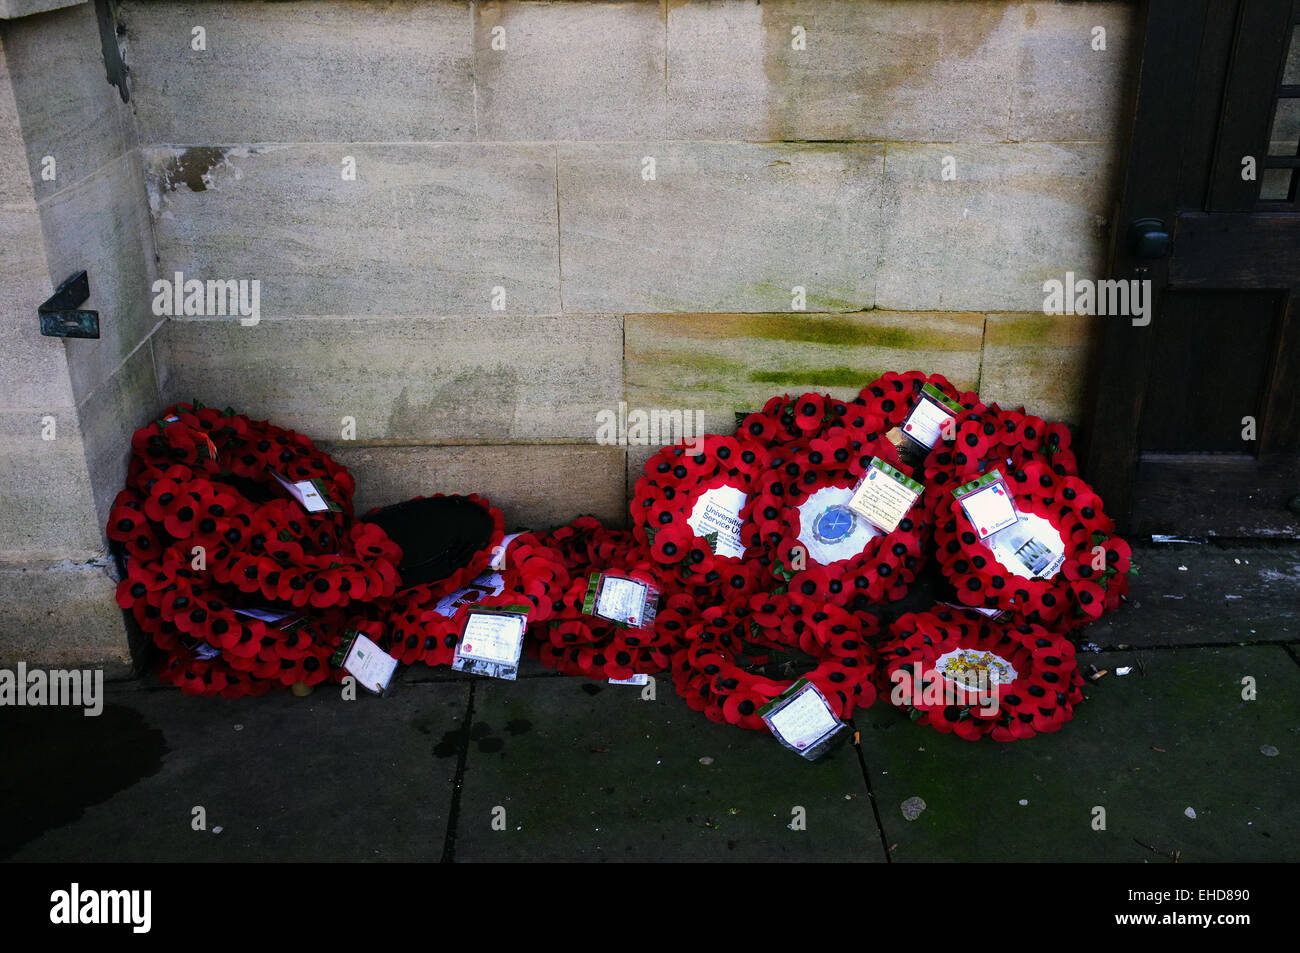 A pile of poppy wreaths laying on the ground in Brighton, UK. - Stock Image